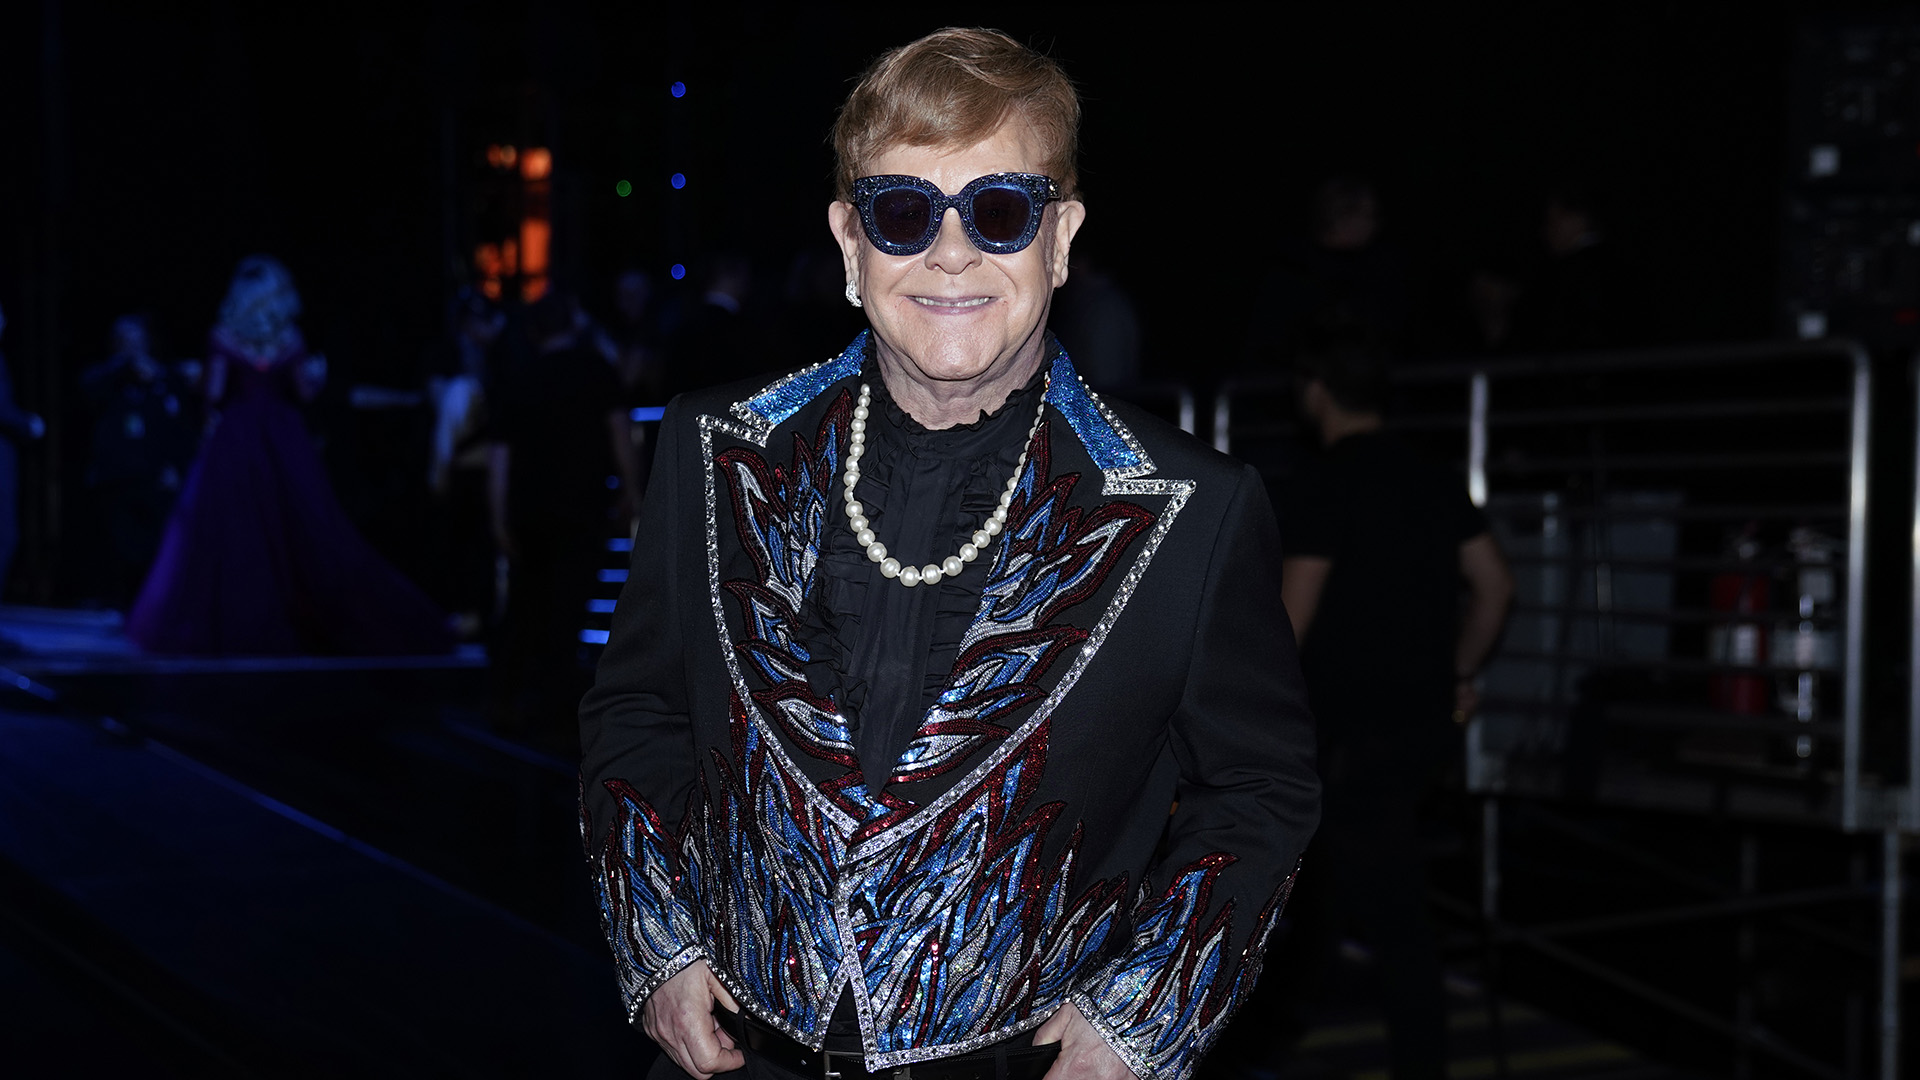 Performer Elton John, who took the Madison Square Garden stage to play